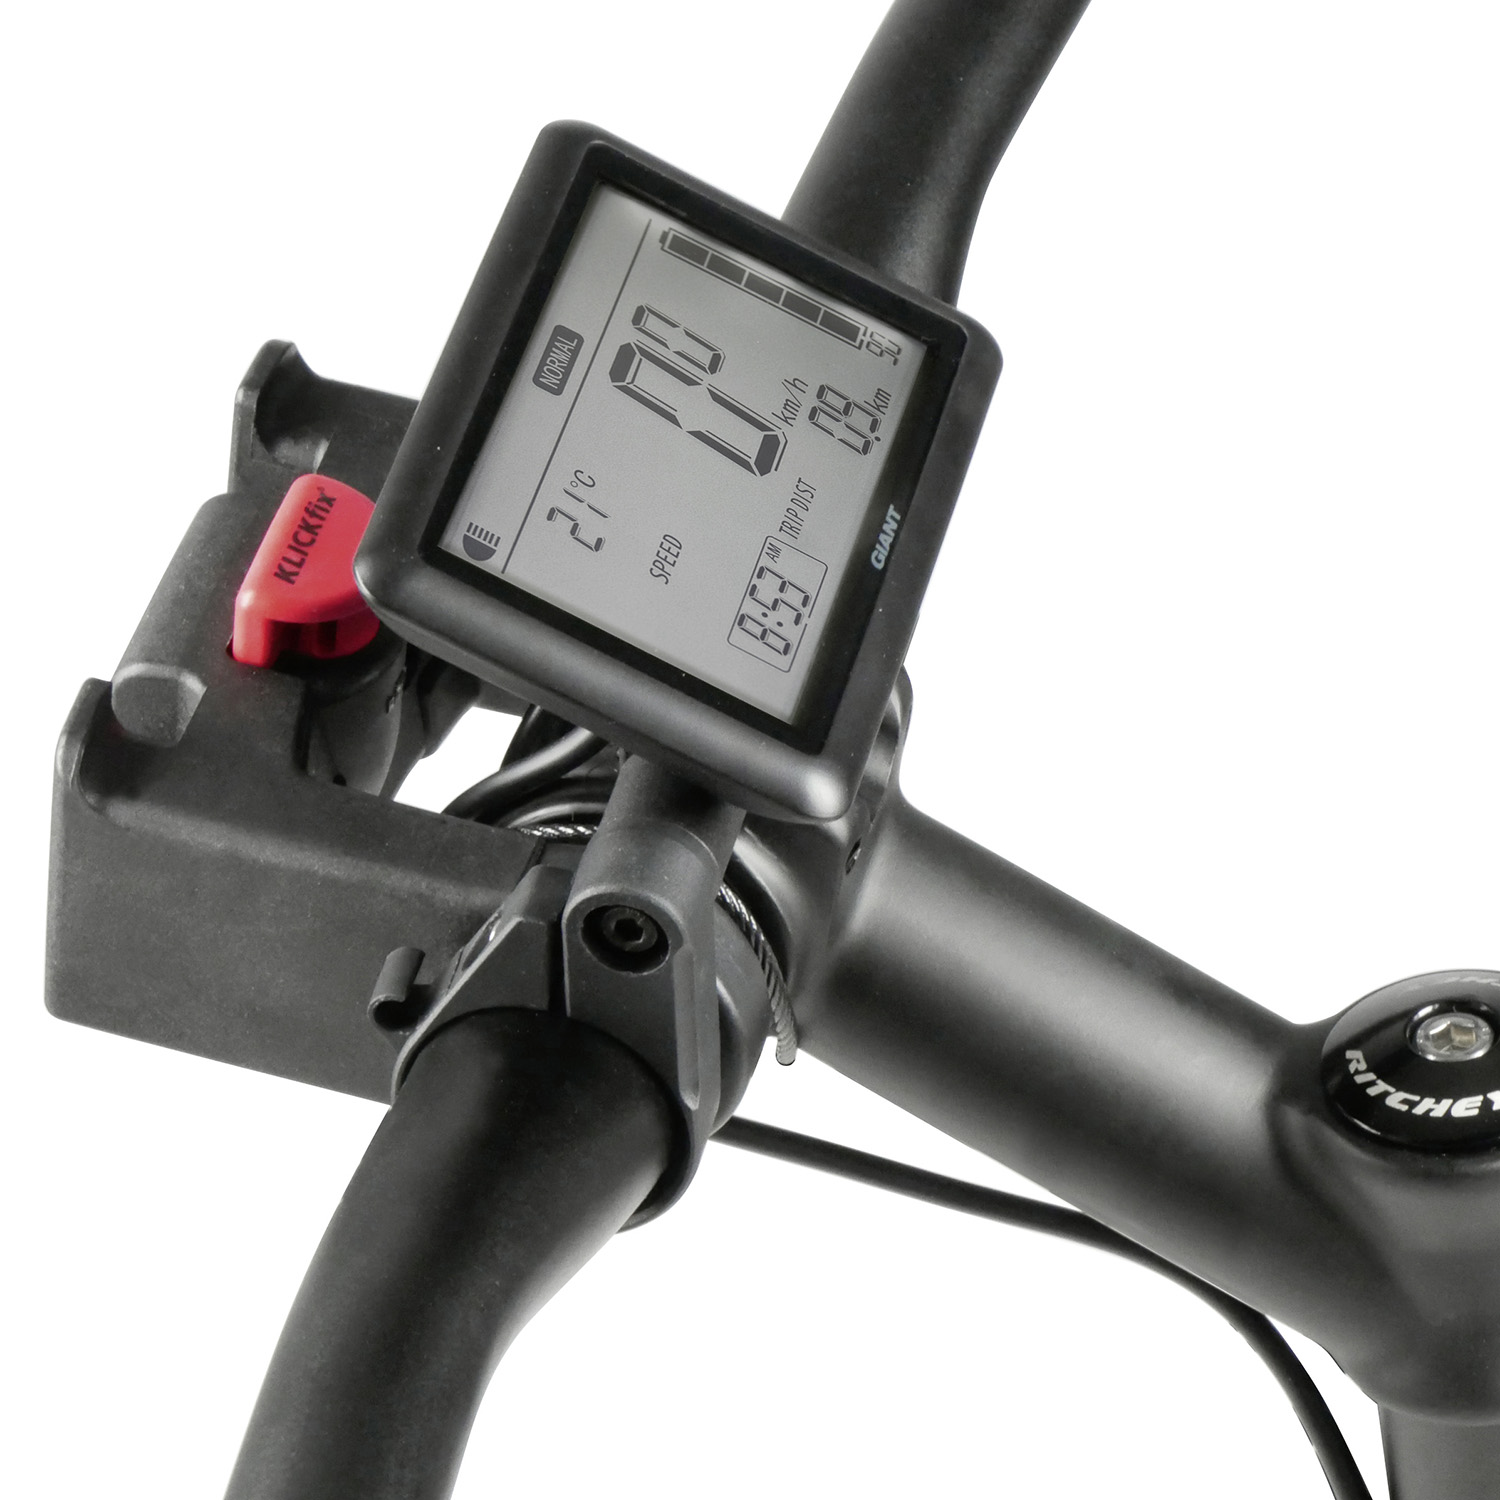 Display Spacer, e-bike display Yamaha in conjunction with handlebar adapter